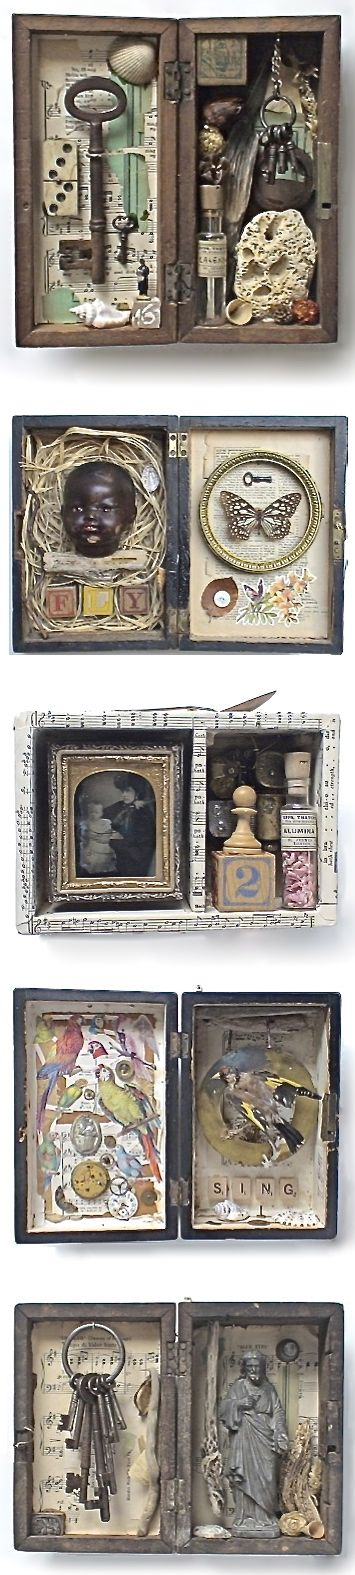 assemblage art by mike bennion